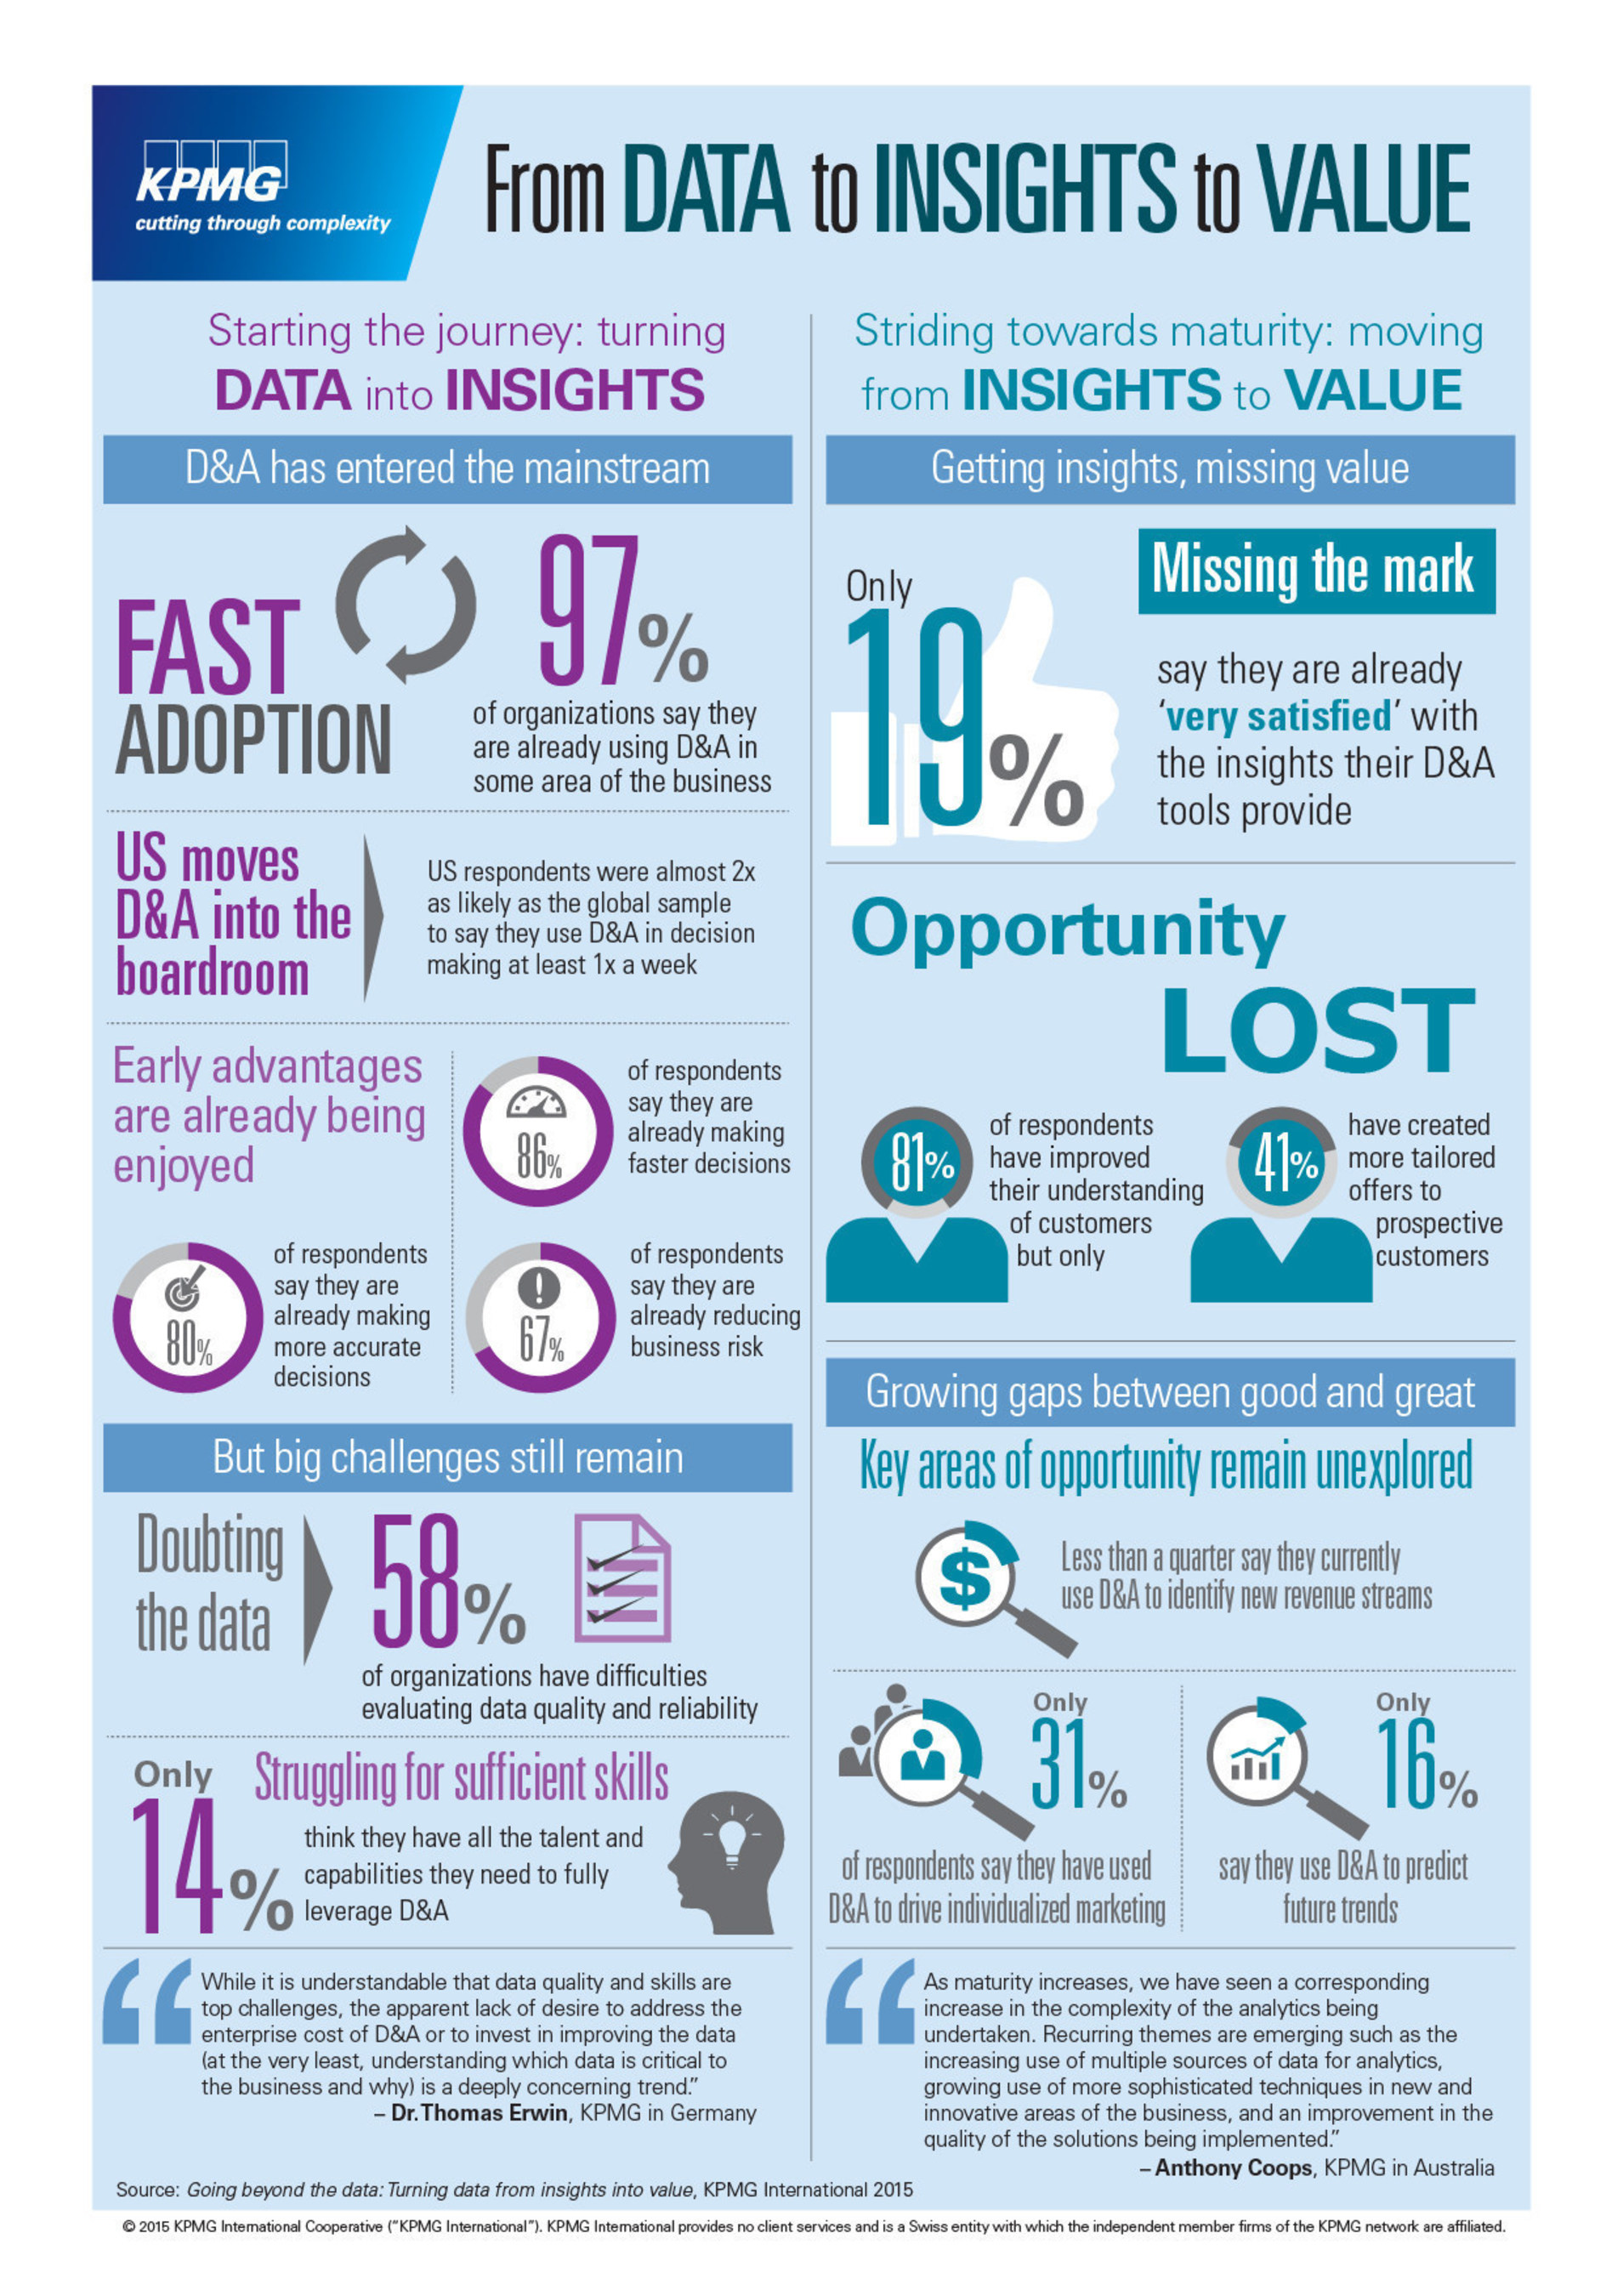 KPMG Study Finds Widespread Adoption of Data and Analytics among Businesses, yet Many Challenged to Derive Value from the Data